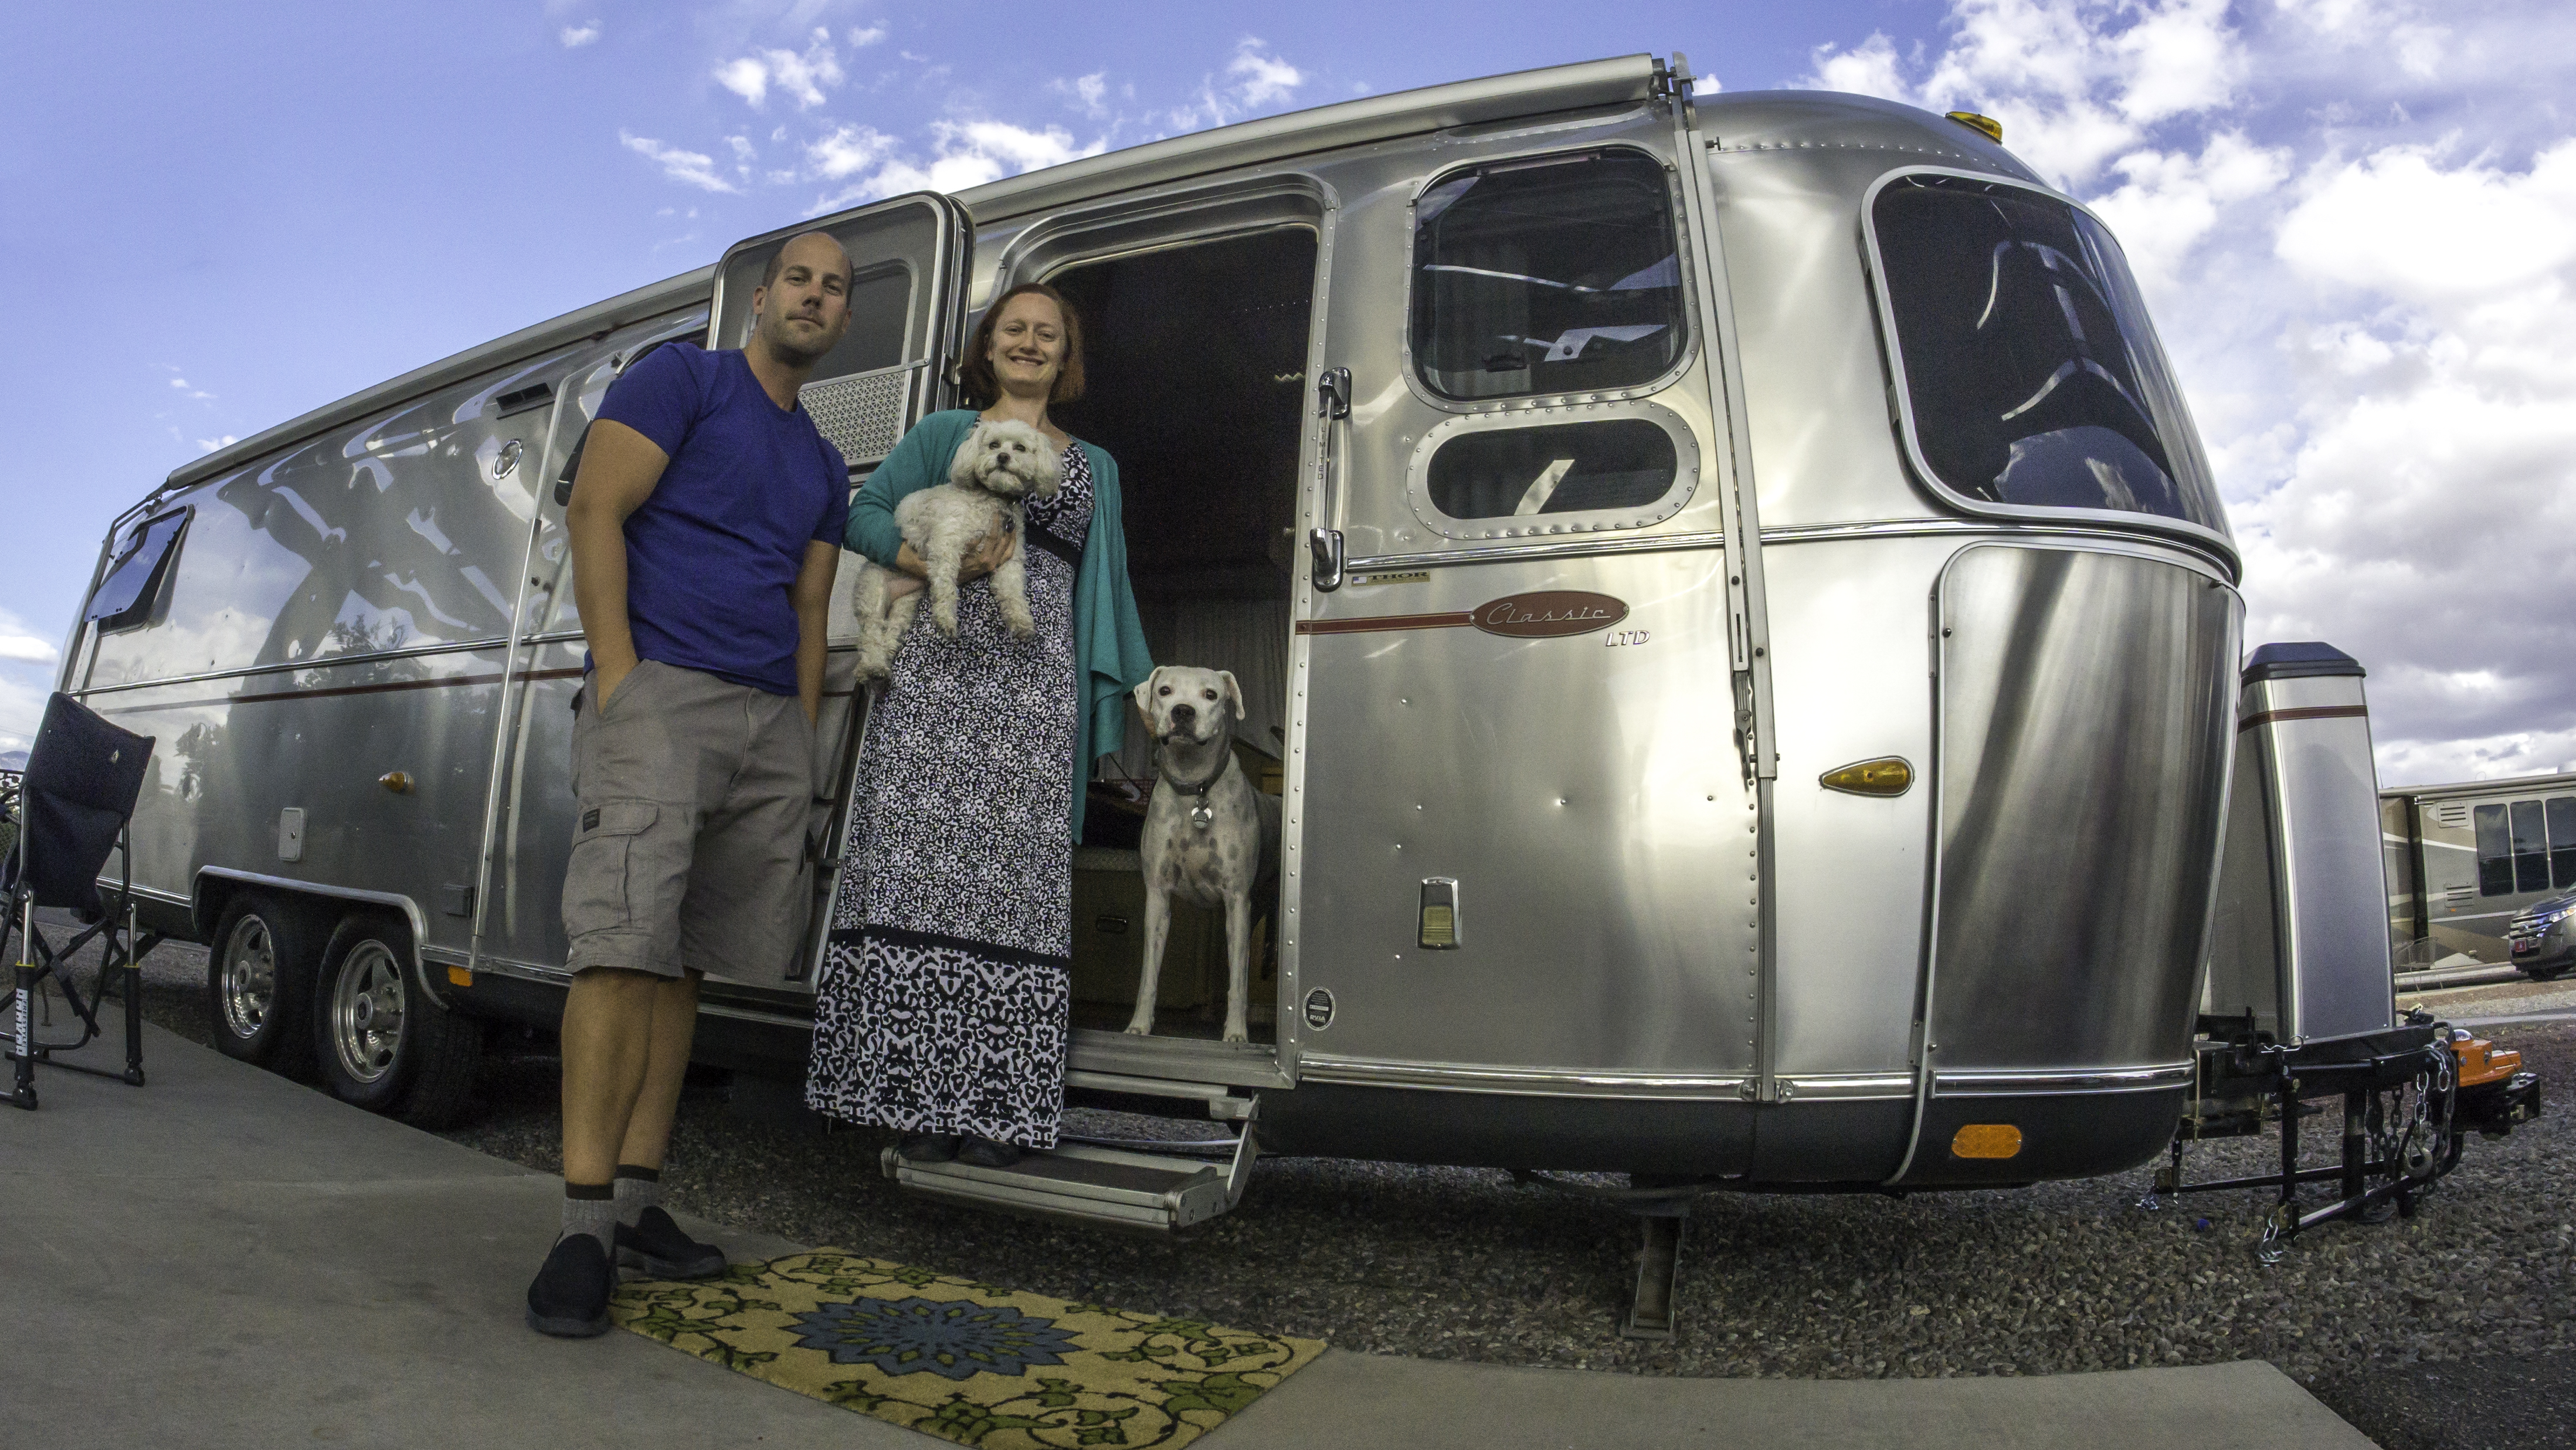 One Month of Tiny Living in our Airstream